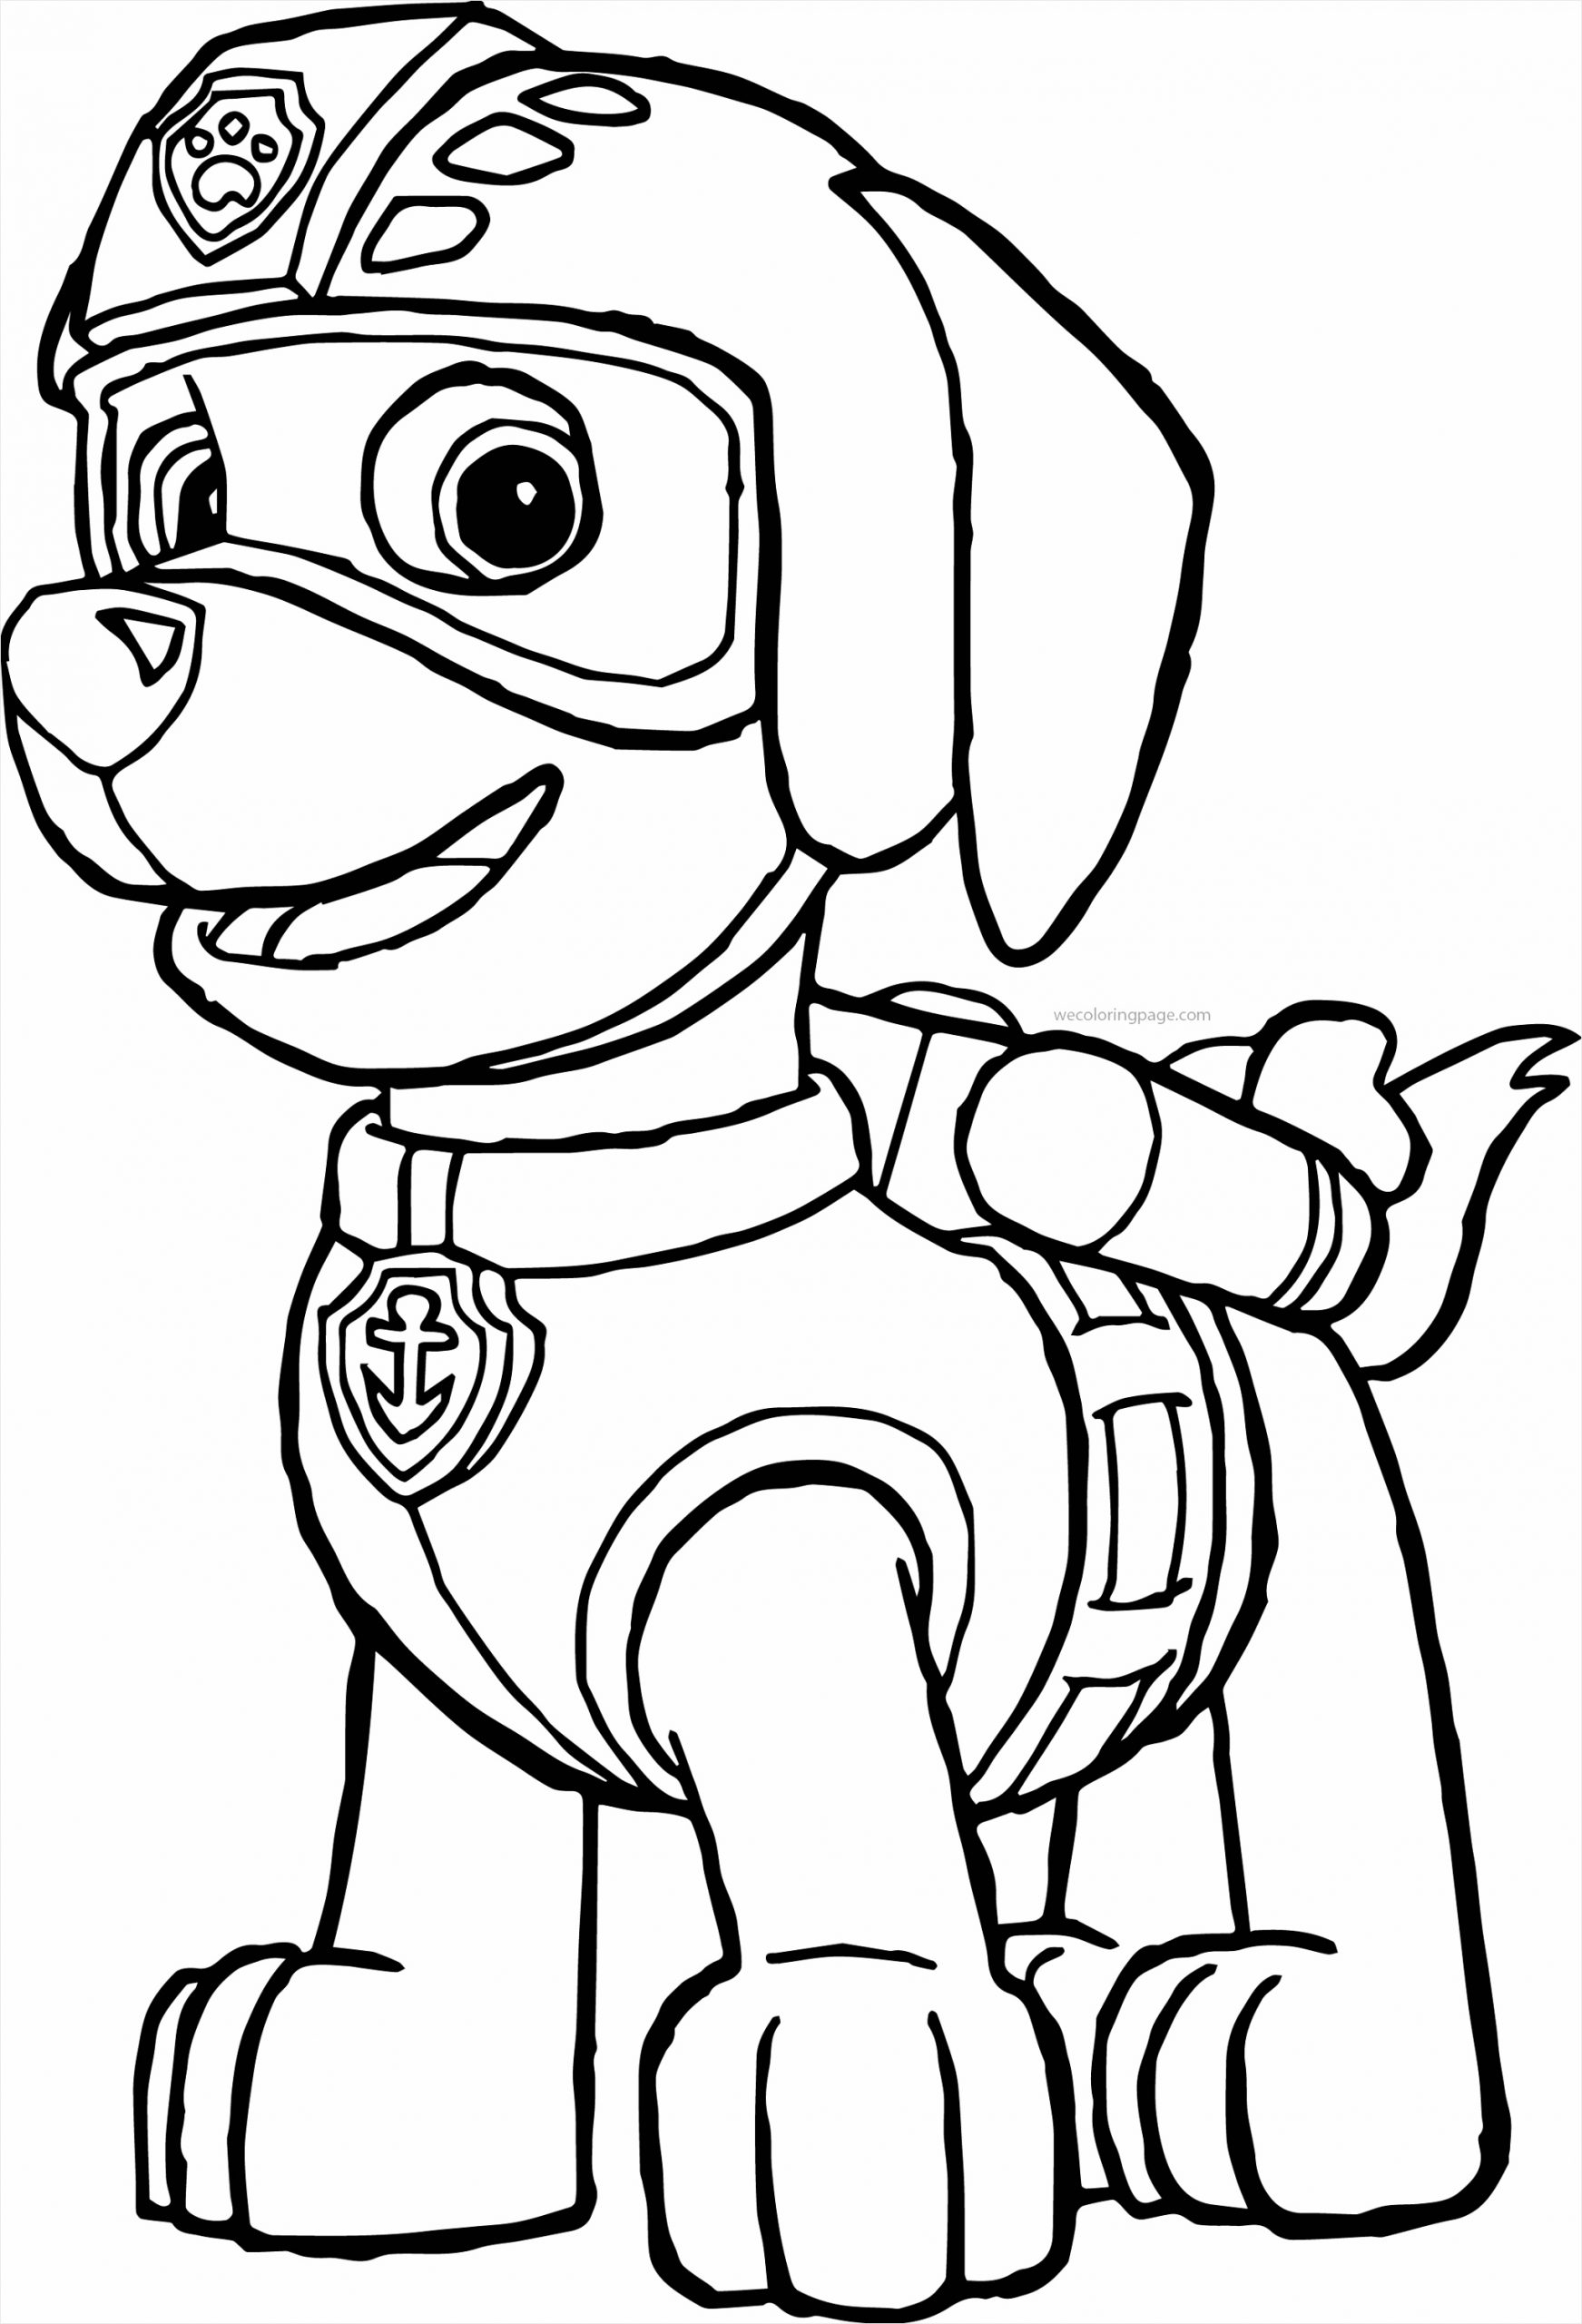 fresh new paw patrol tracker coloring pages trevon pinterest free of great skye colorful printa unknown page twfyu